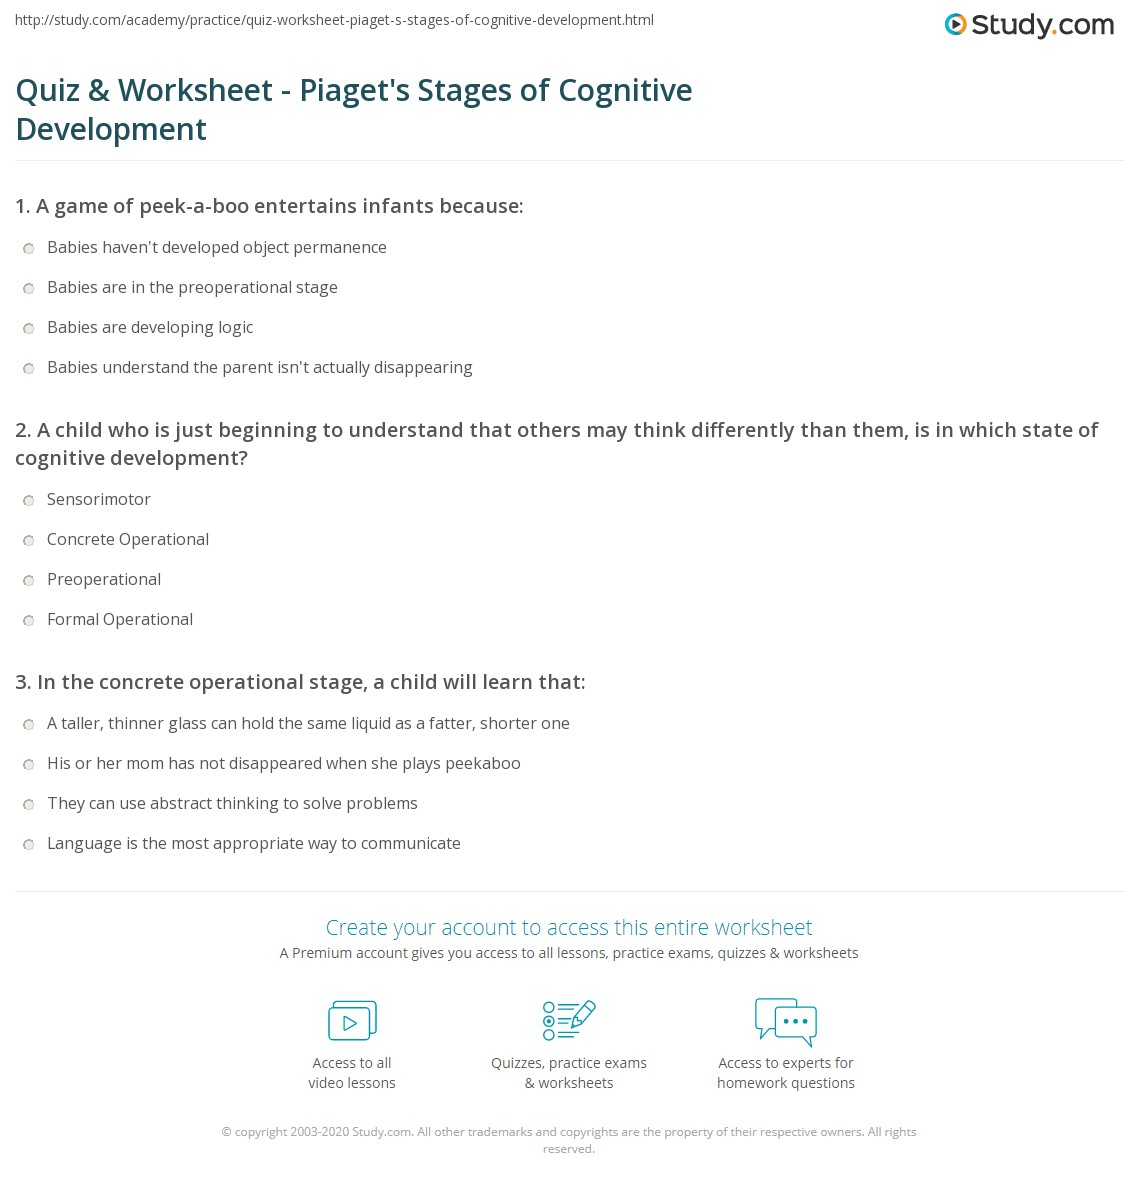 quiz worksheet piaget 39 s stages of cognitive development. Black Bedroom Furniture Sets. Home Design Ideas